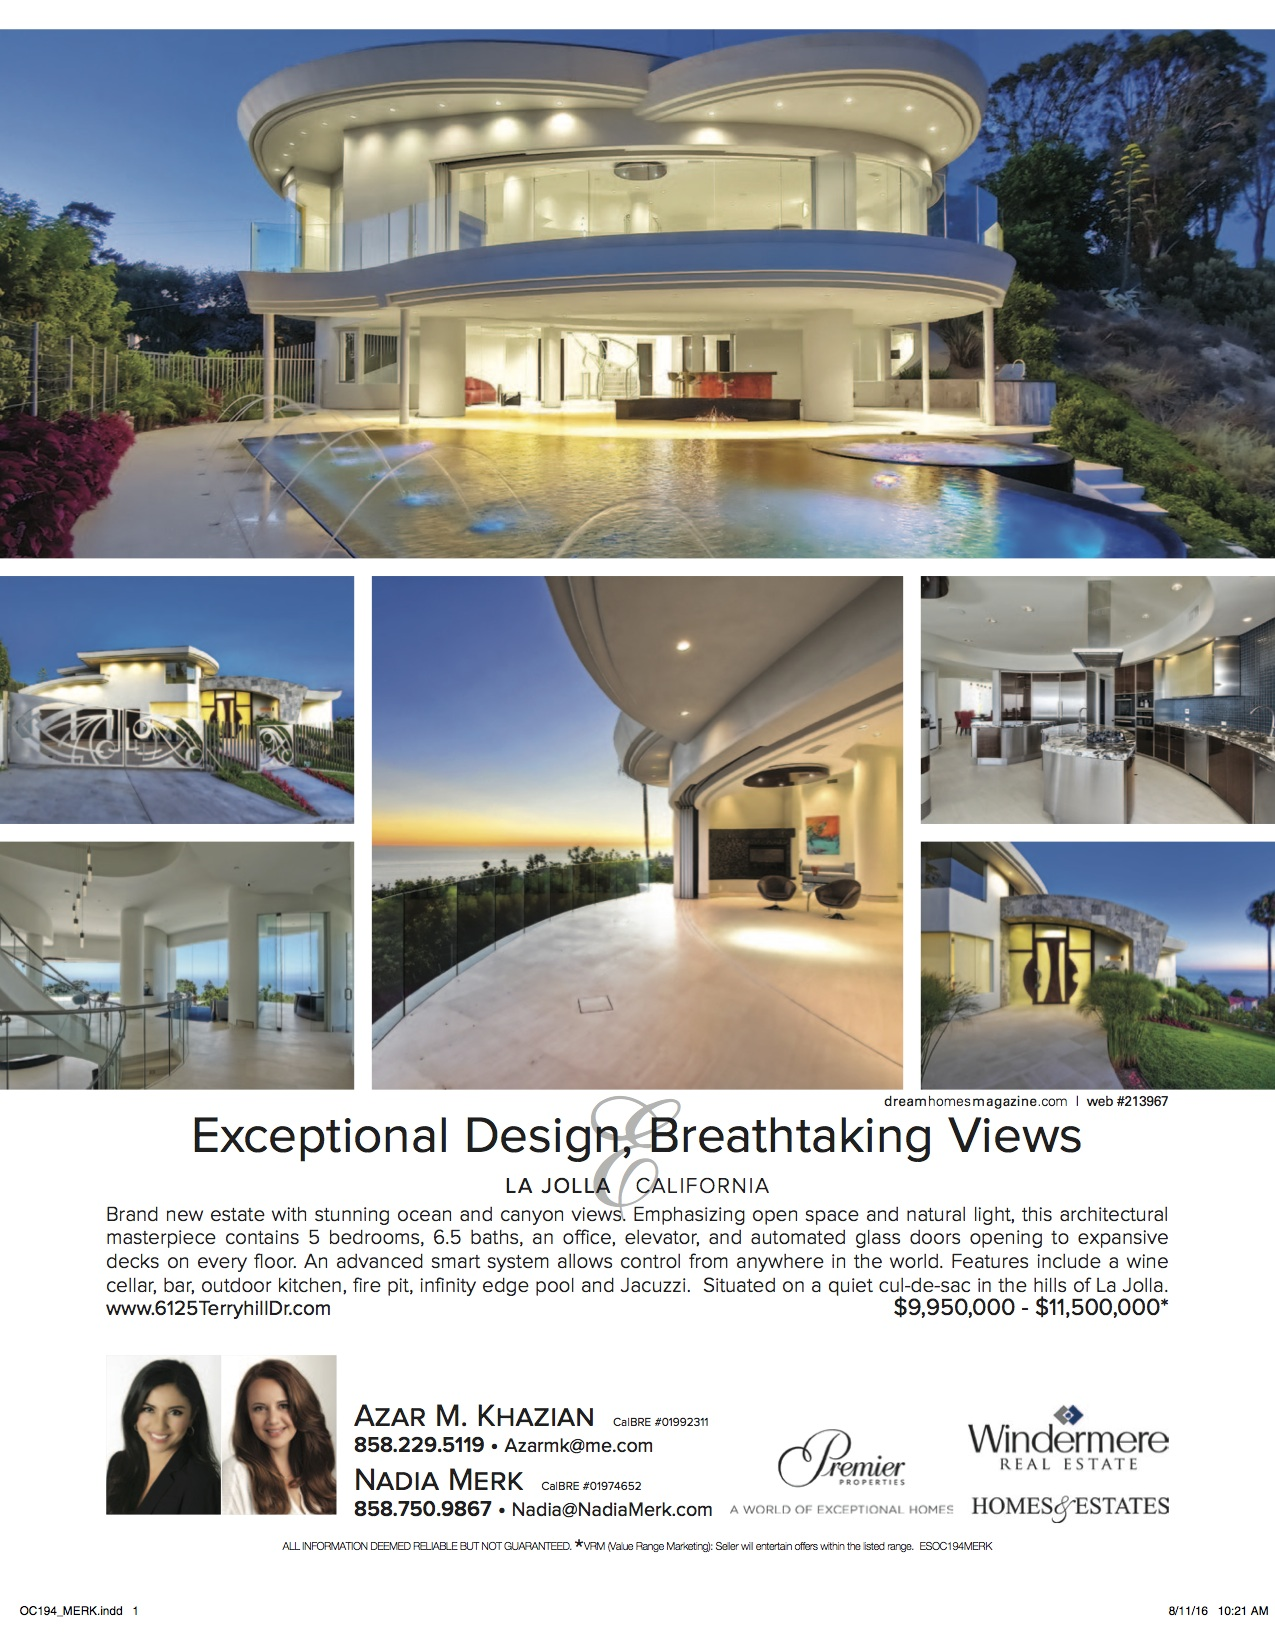 Dream Homes Magazine Nadia Merk